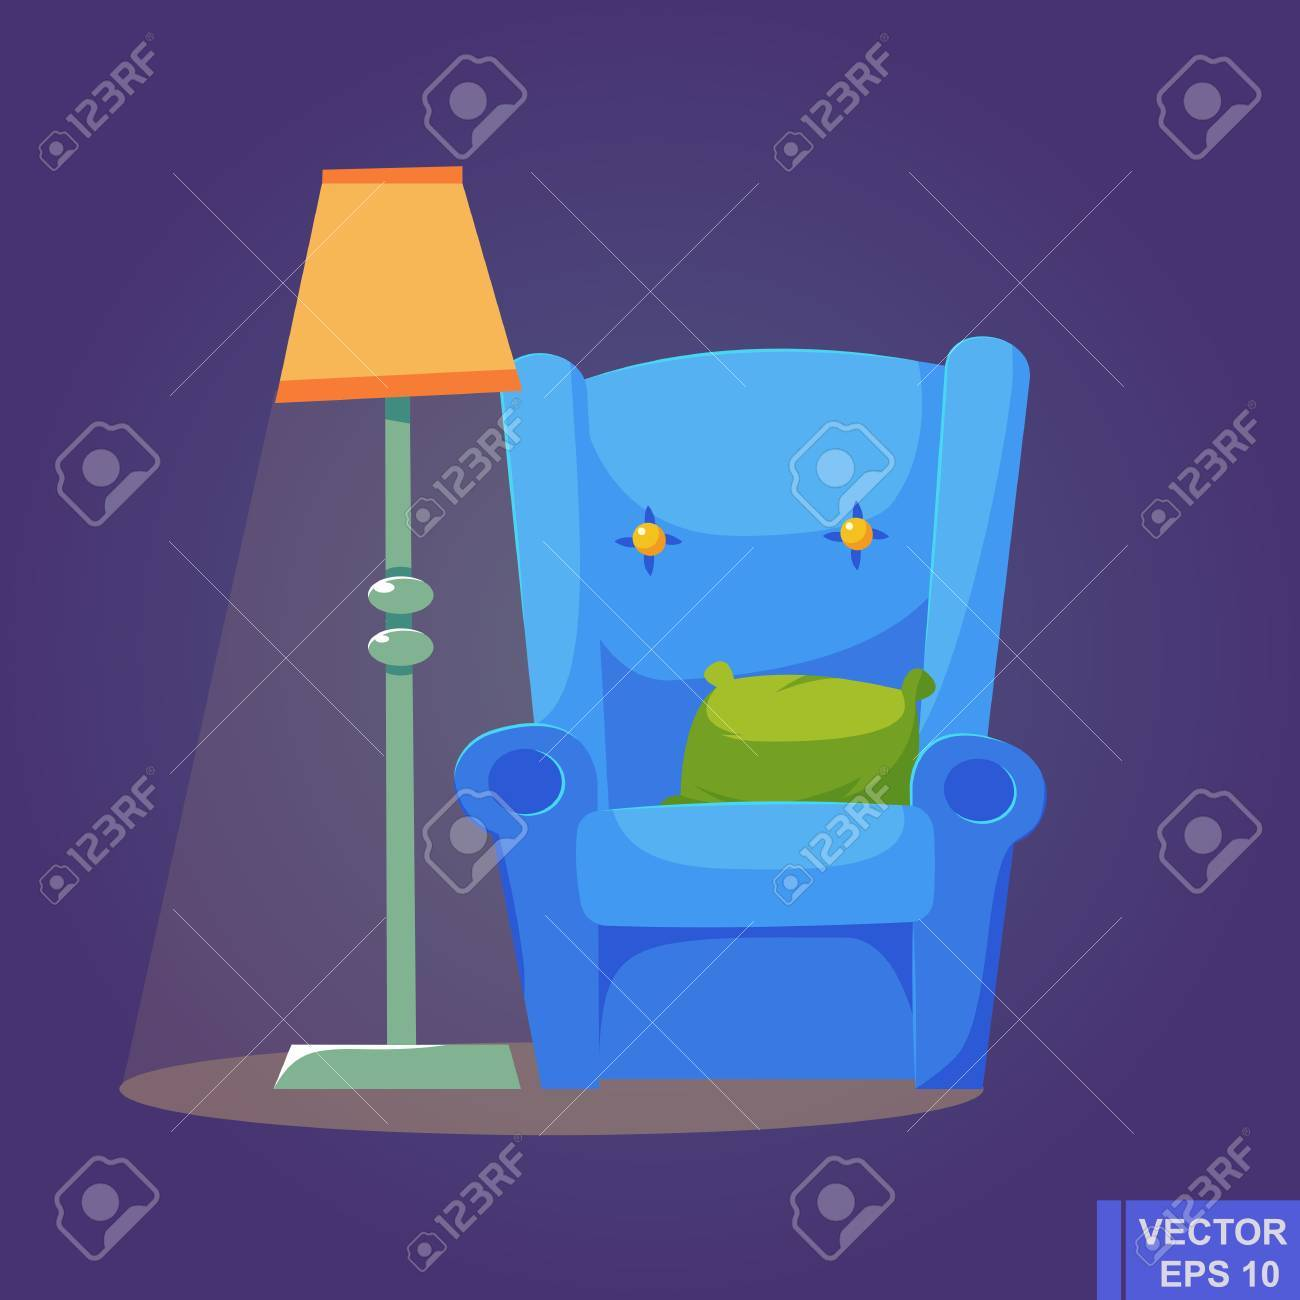 Surprising Cozy Home Stuff Isolated Object Background Cartoon Image Vector Interior Design Ideas Gresisoteloinfo